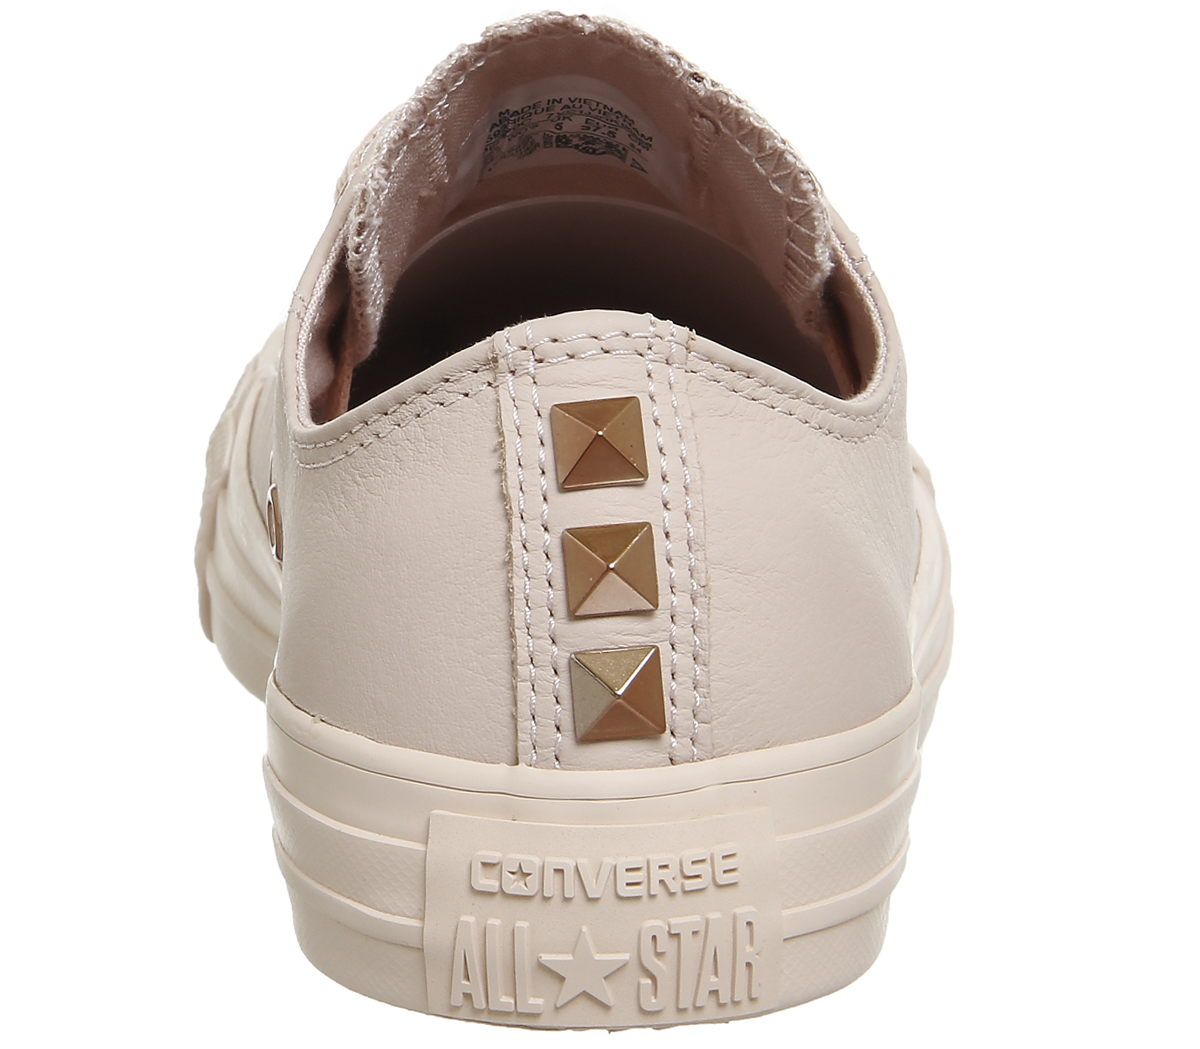 Womens Converse Converse Womens All Star Low Leather DUST PINK STUD EXCLUSIVE Trainers Shoes 1866cb